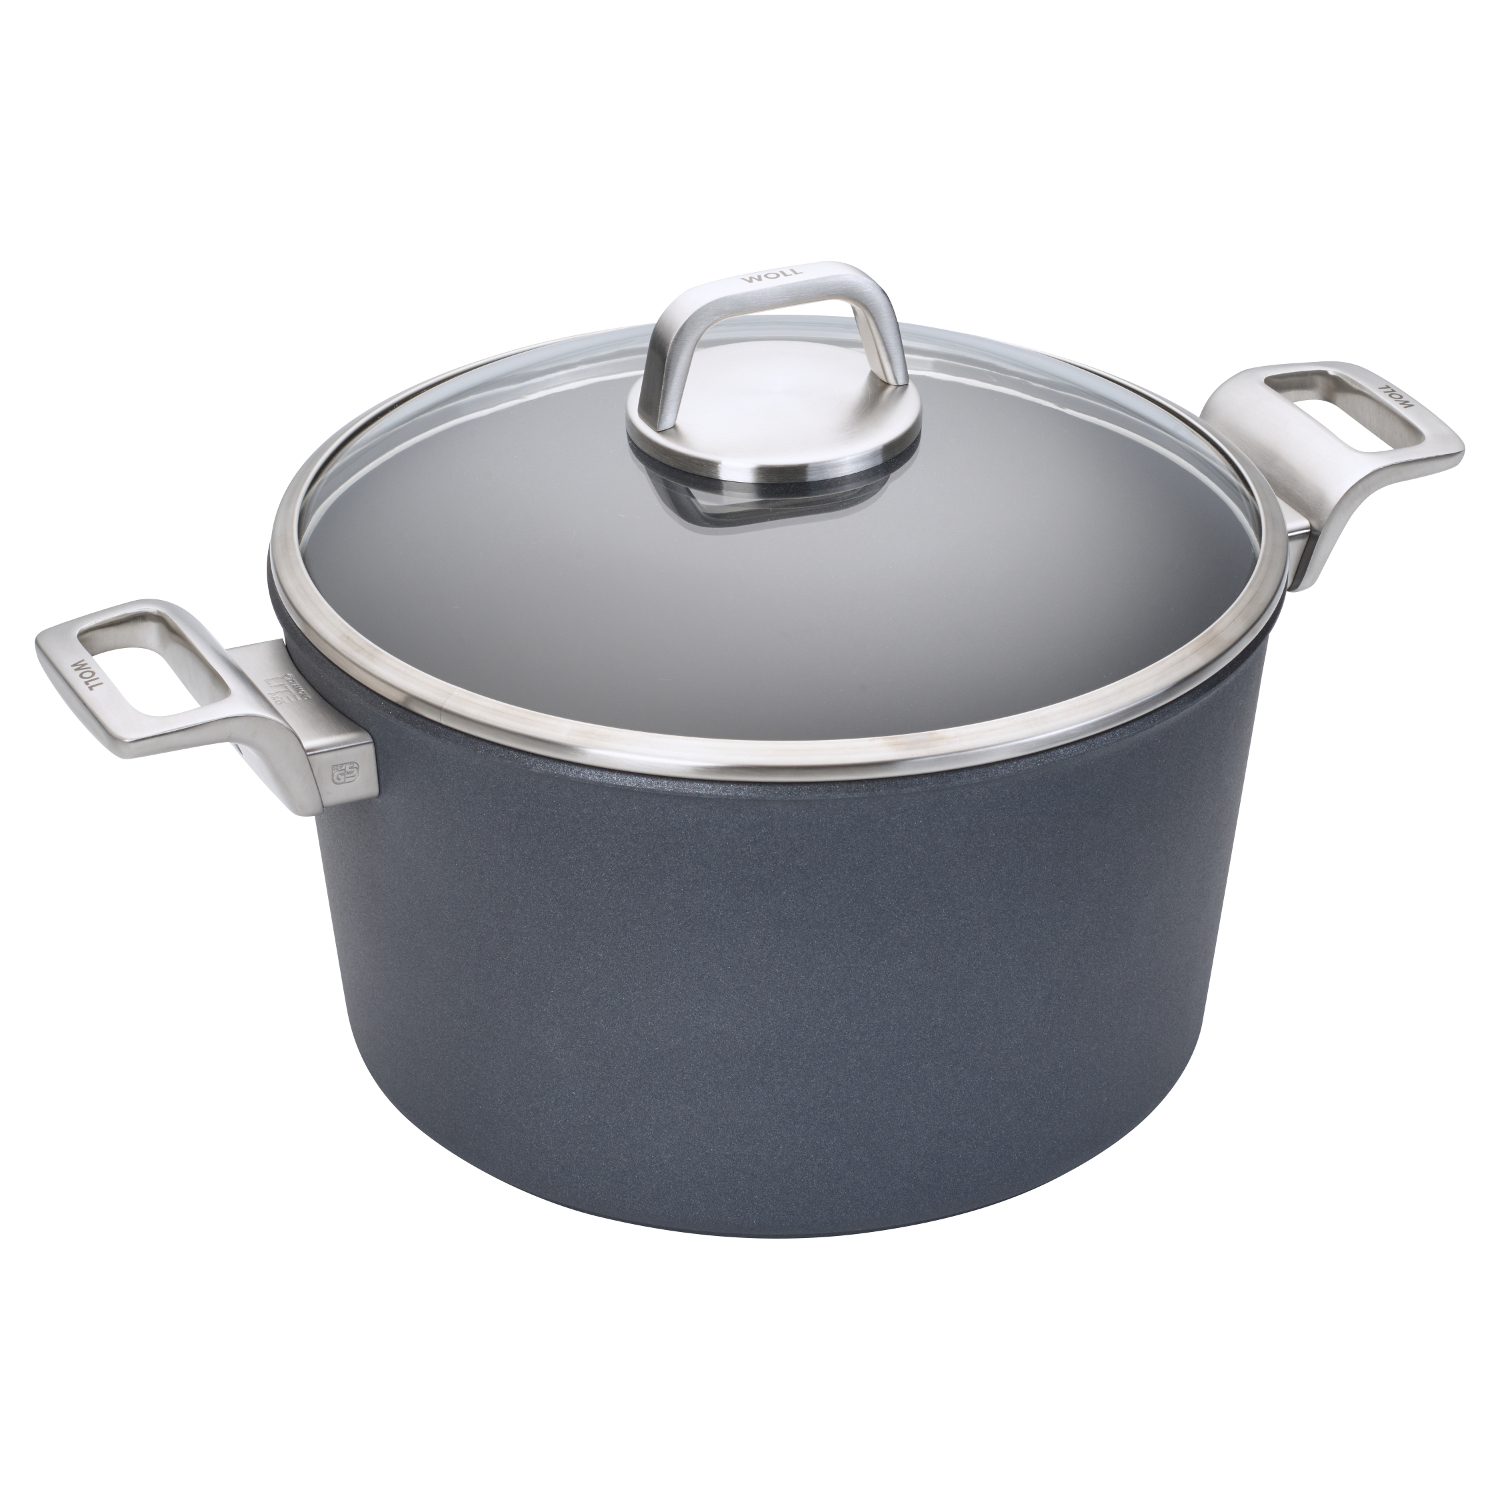 Woll Diamond Lite Pro 5.25 Quart Stockpot with Lid